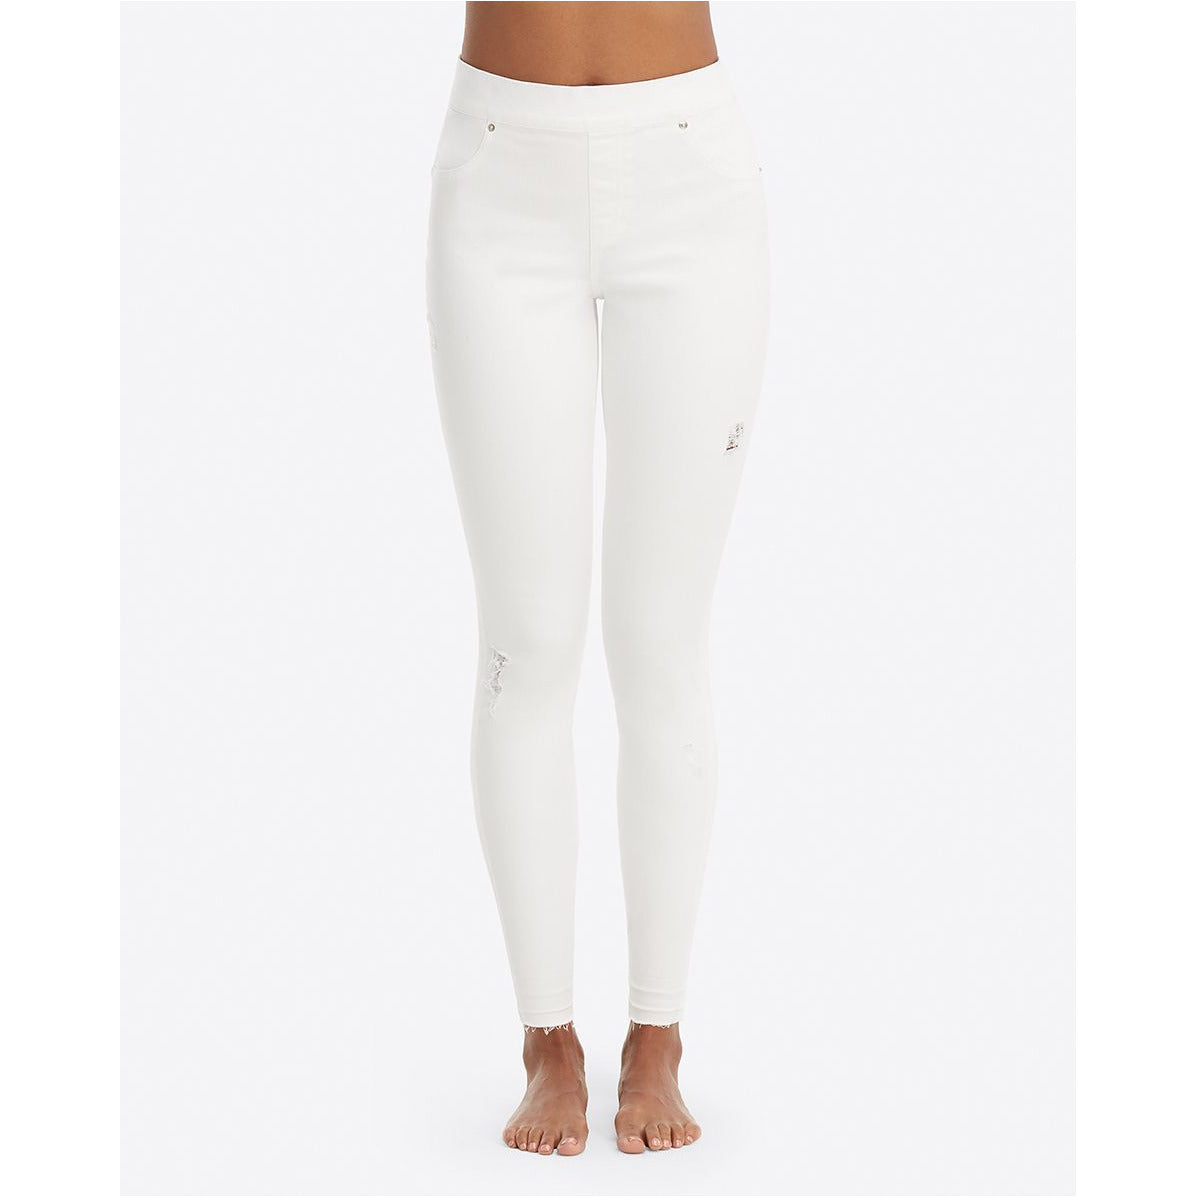 77d71278983 Spanx Distressed Skinny Jeans In White – A Little Bird Boutique